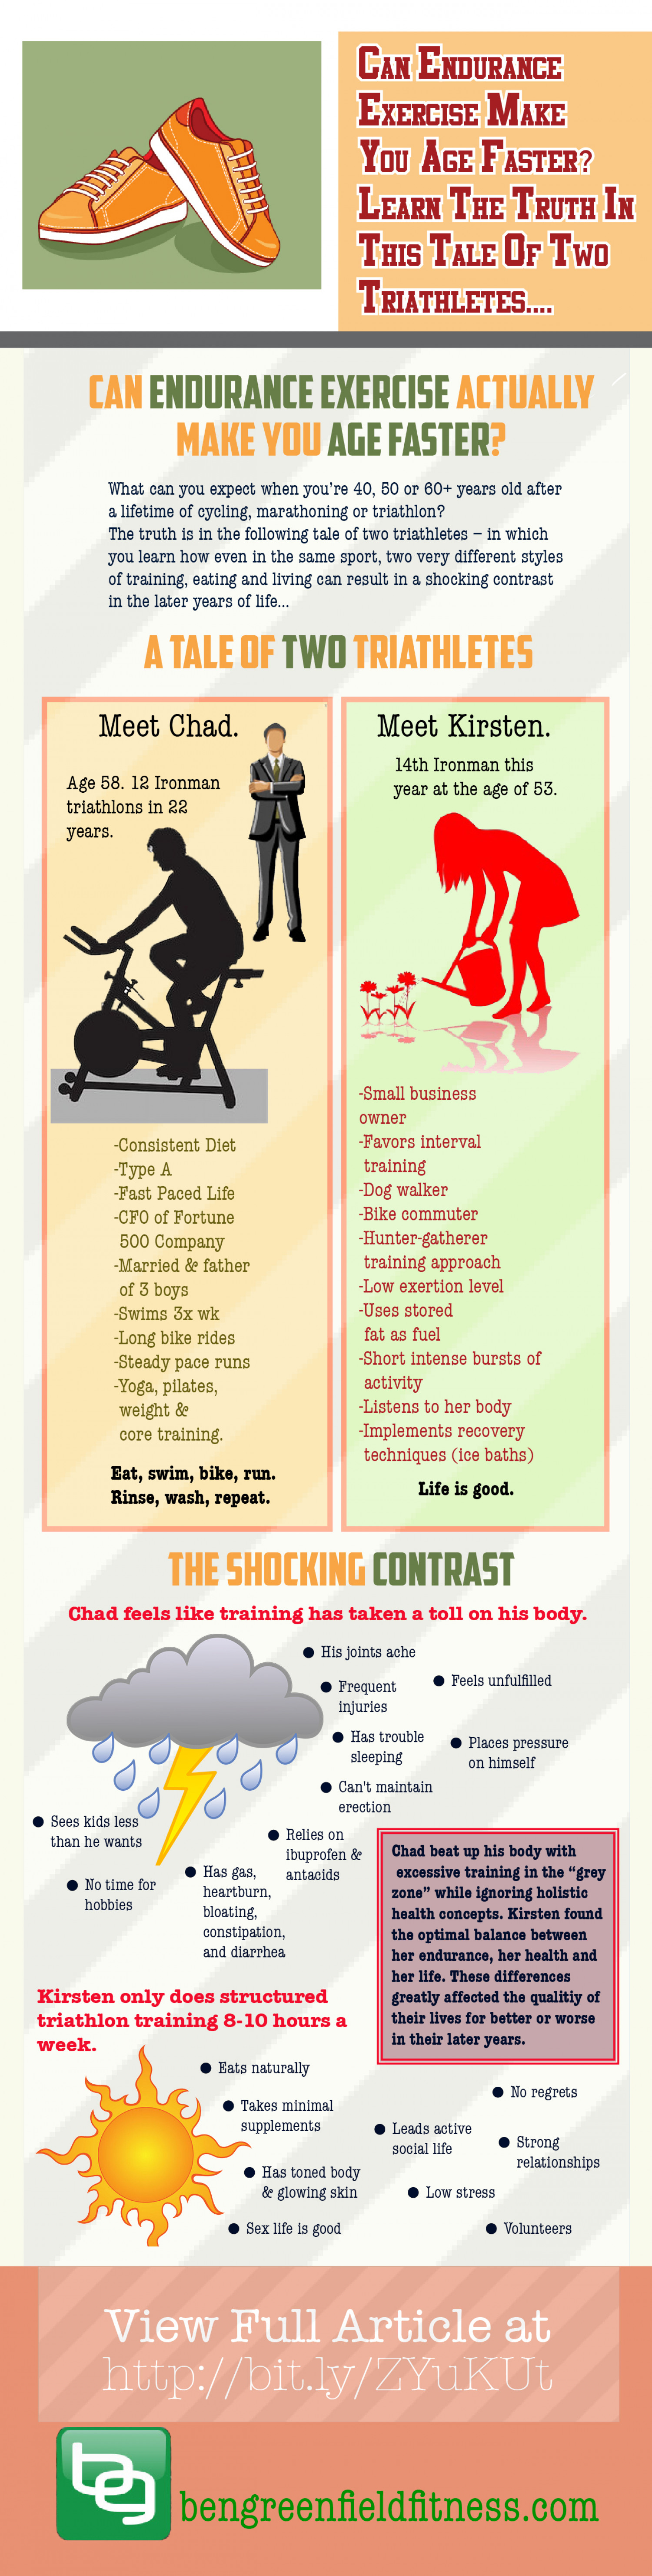 Can Endurance Exercise Make You Age Faster? Learn The Truth In This Tale Of Two Triathletes…  Infographic